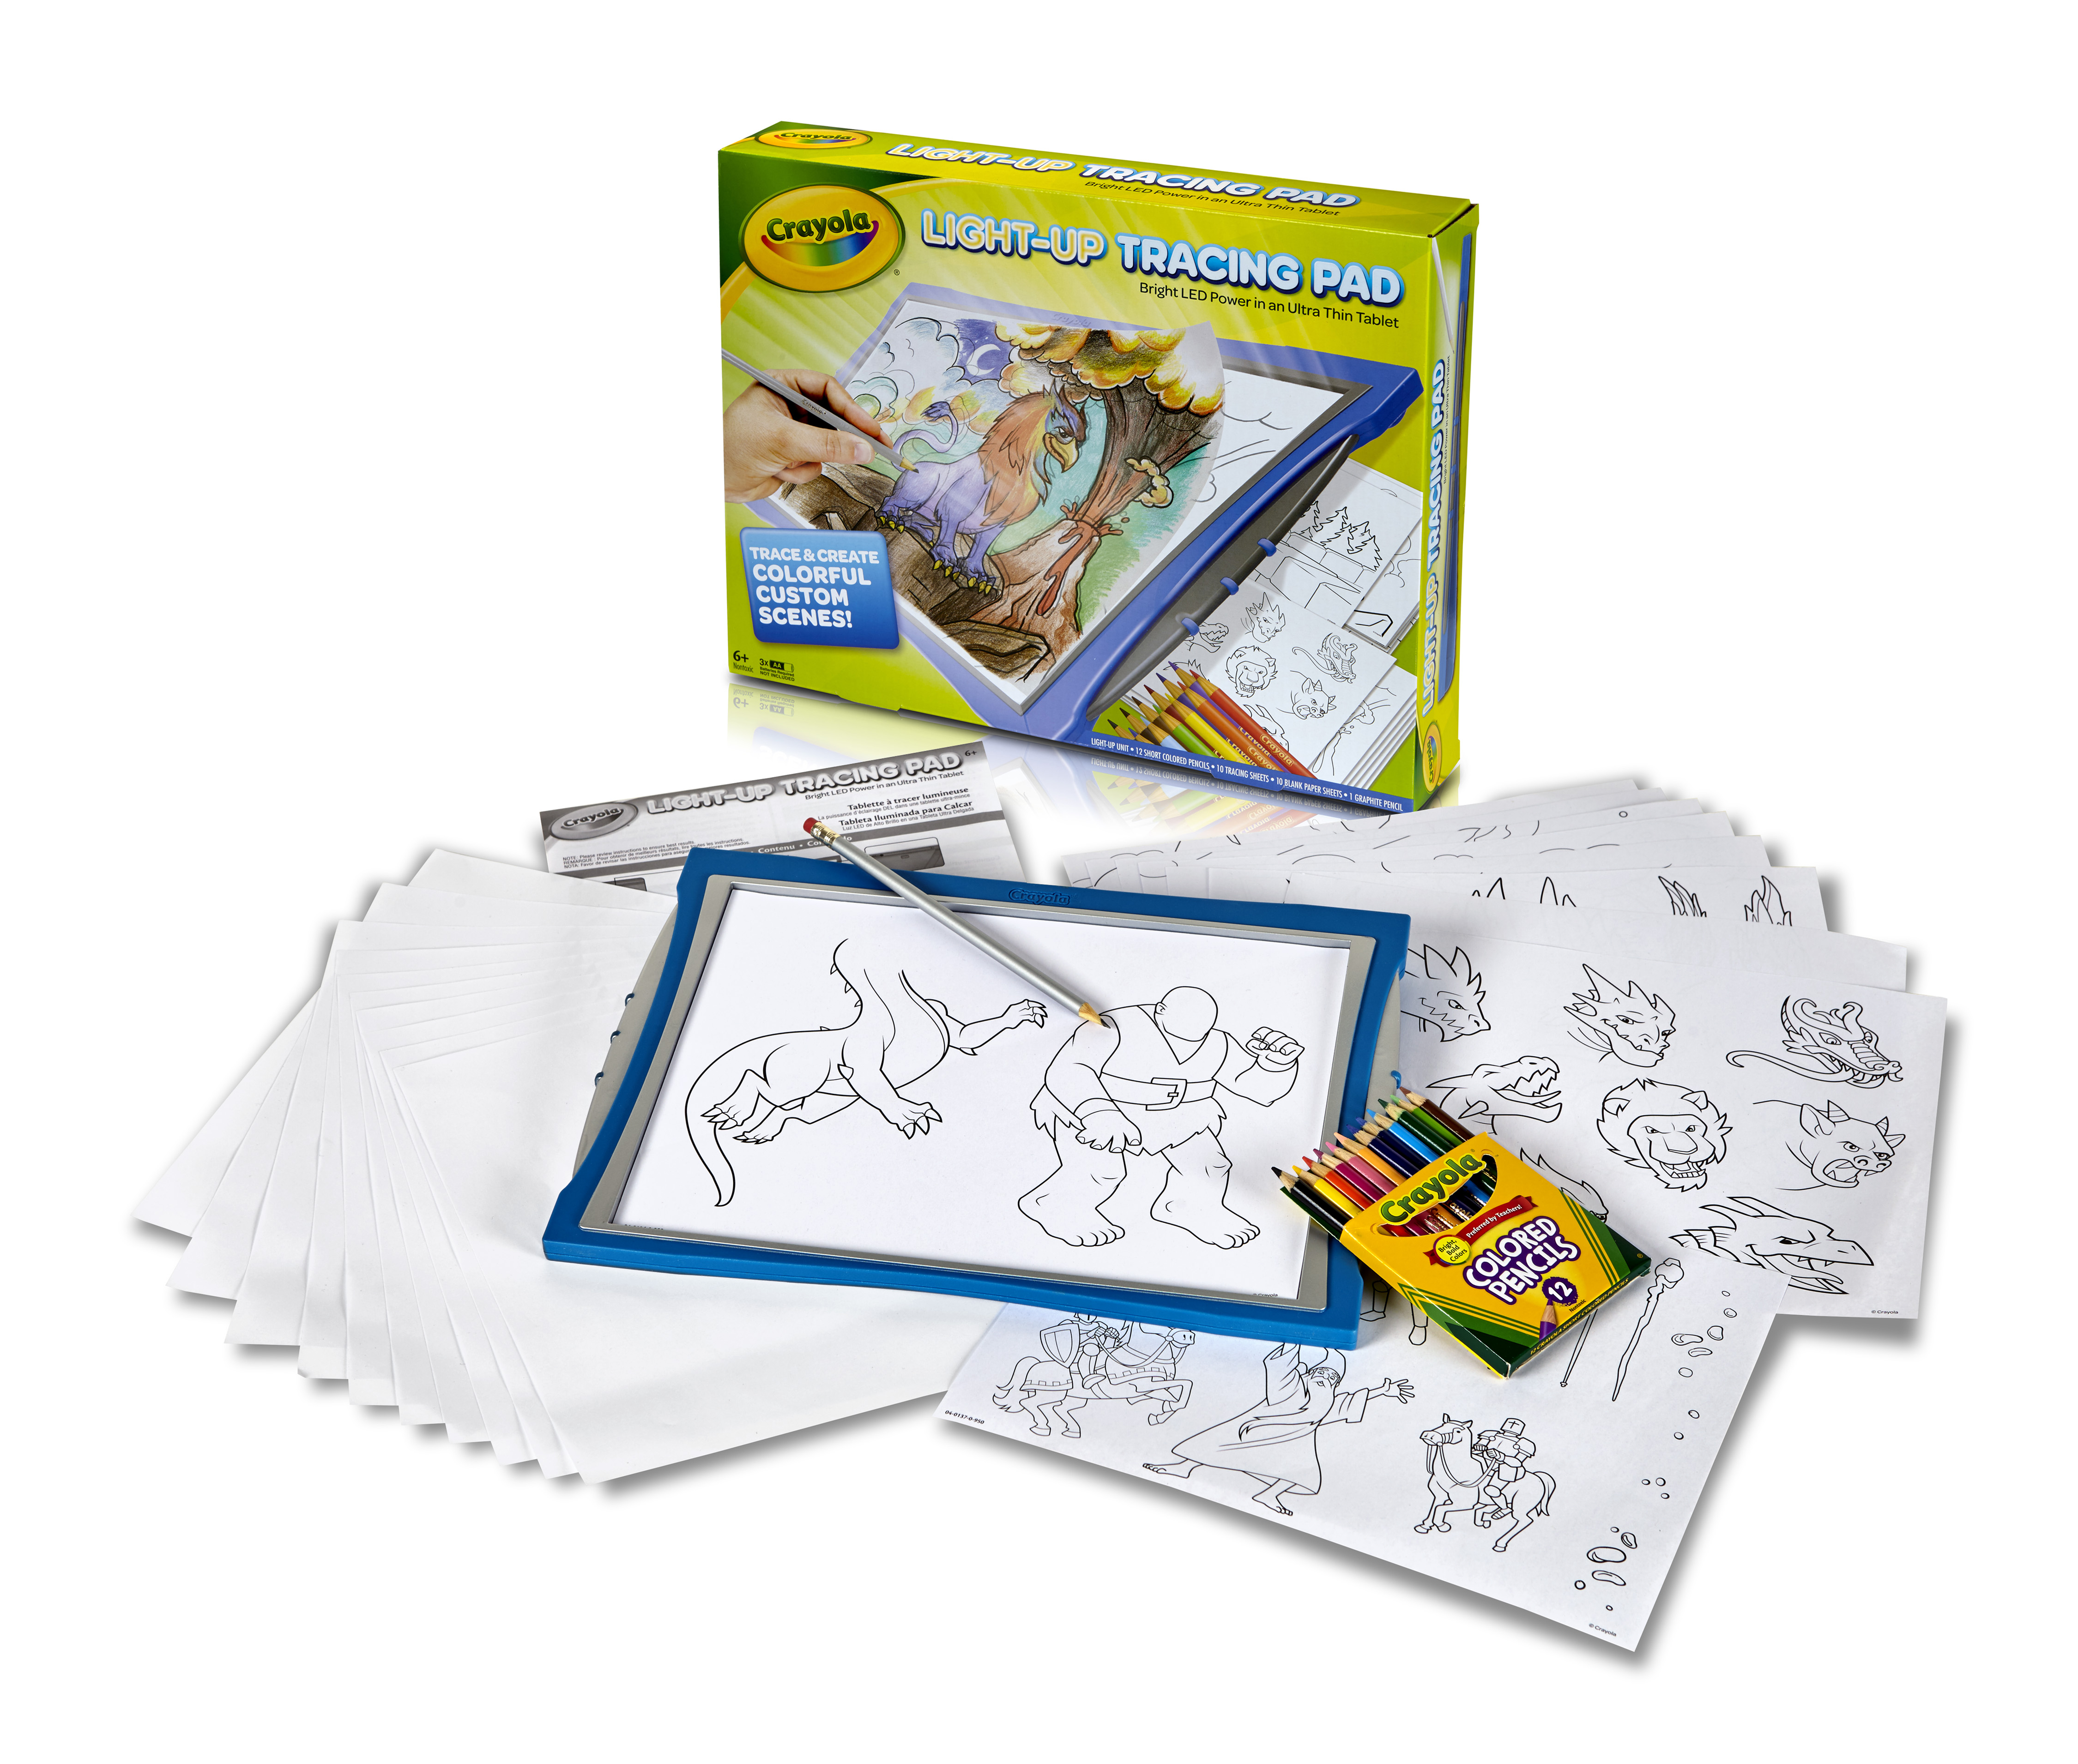 Crayola Light Up Tracing Pad For Boys by Crayola